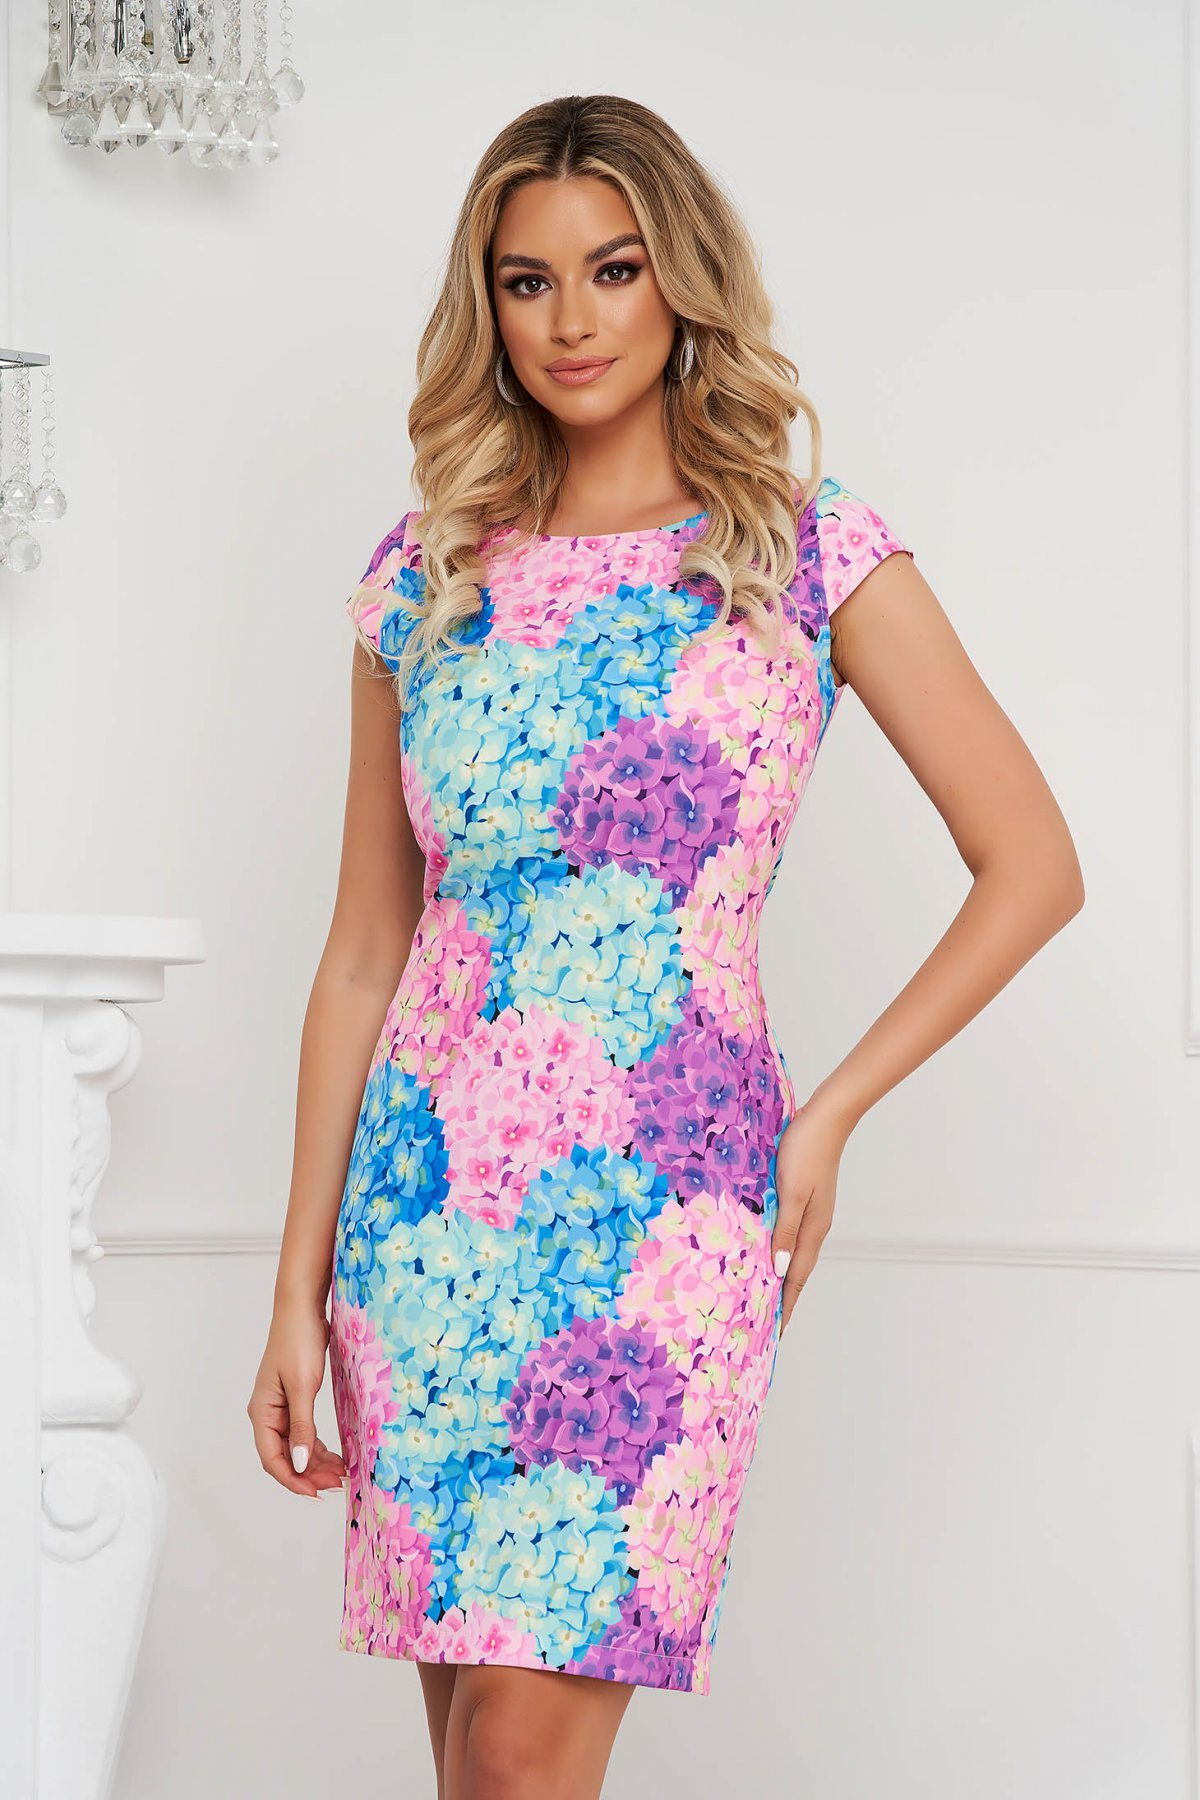 Rochie StarShinerS office tip creion din material neelastic cu imprimeu floral unic